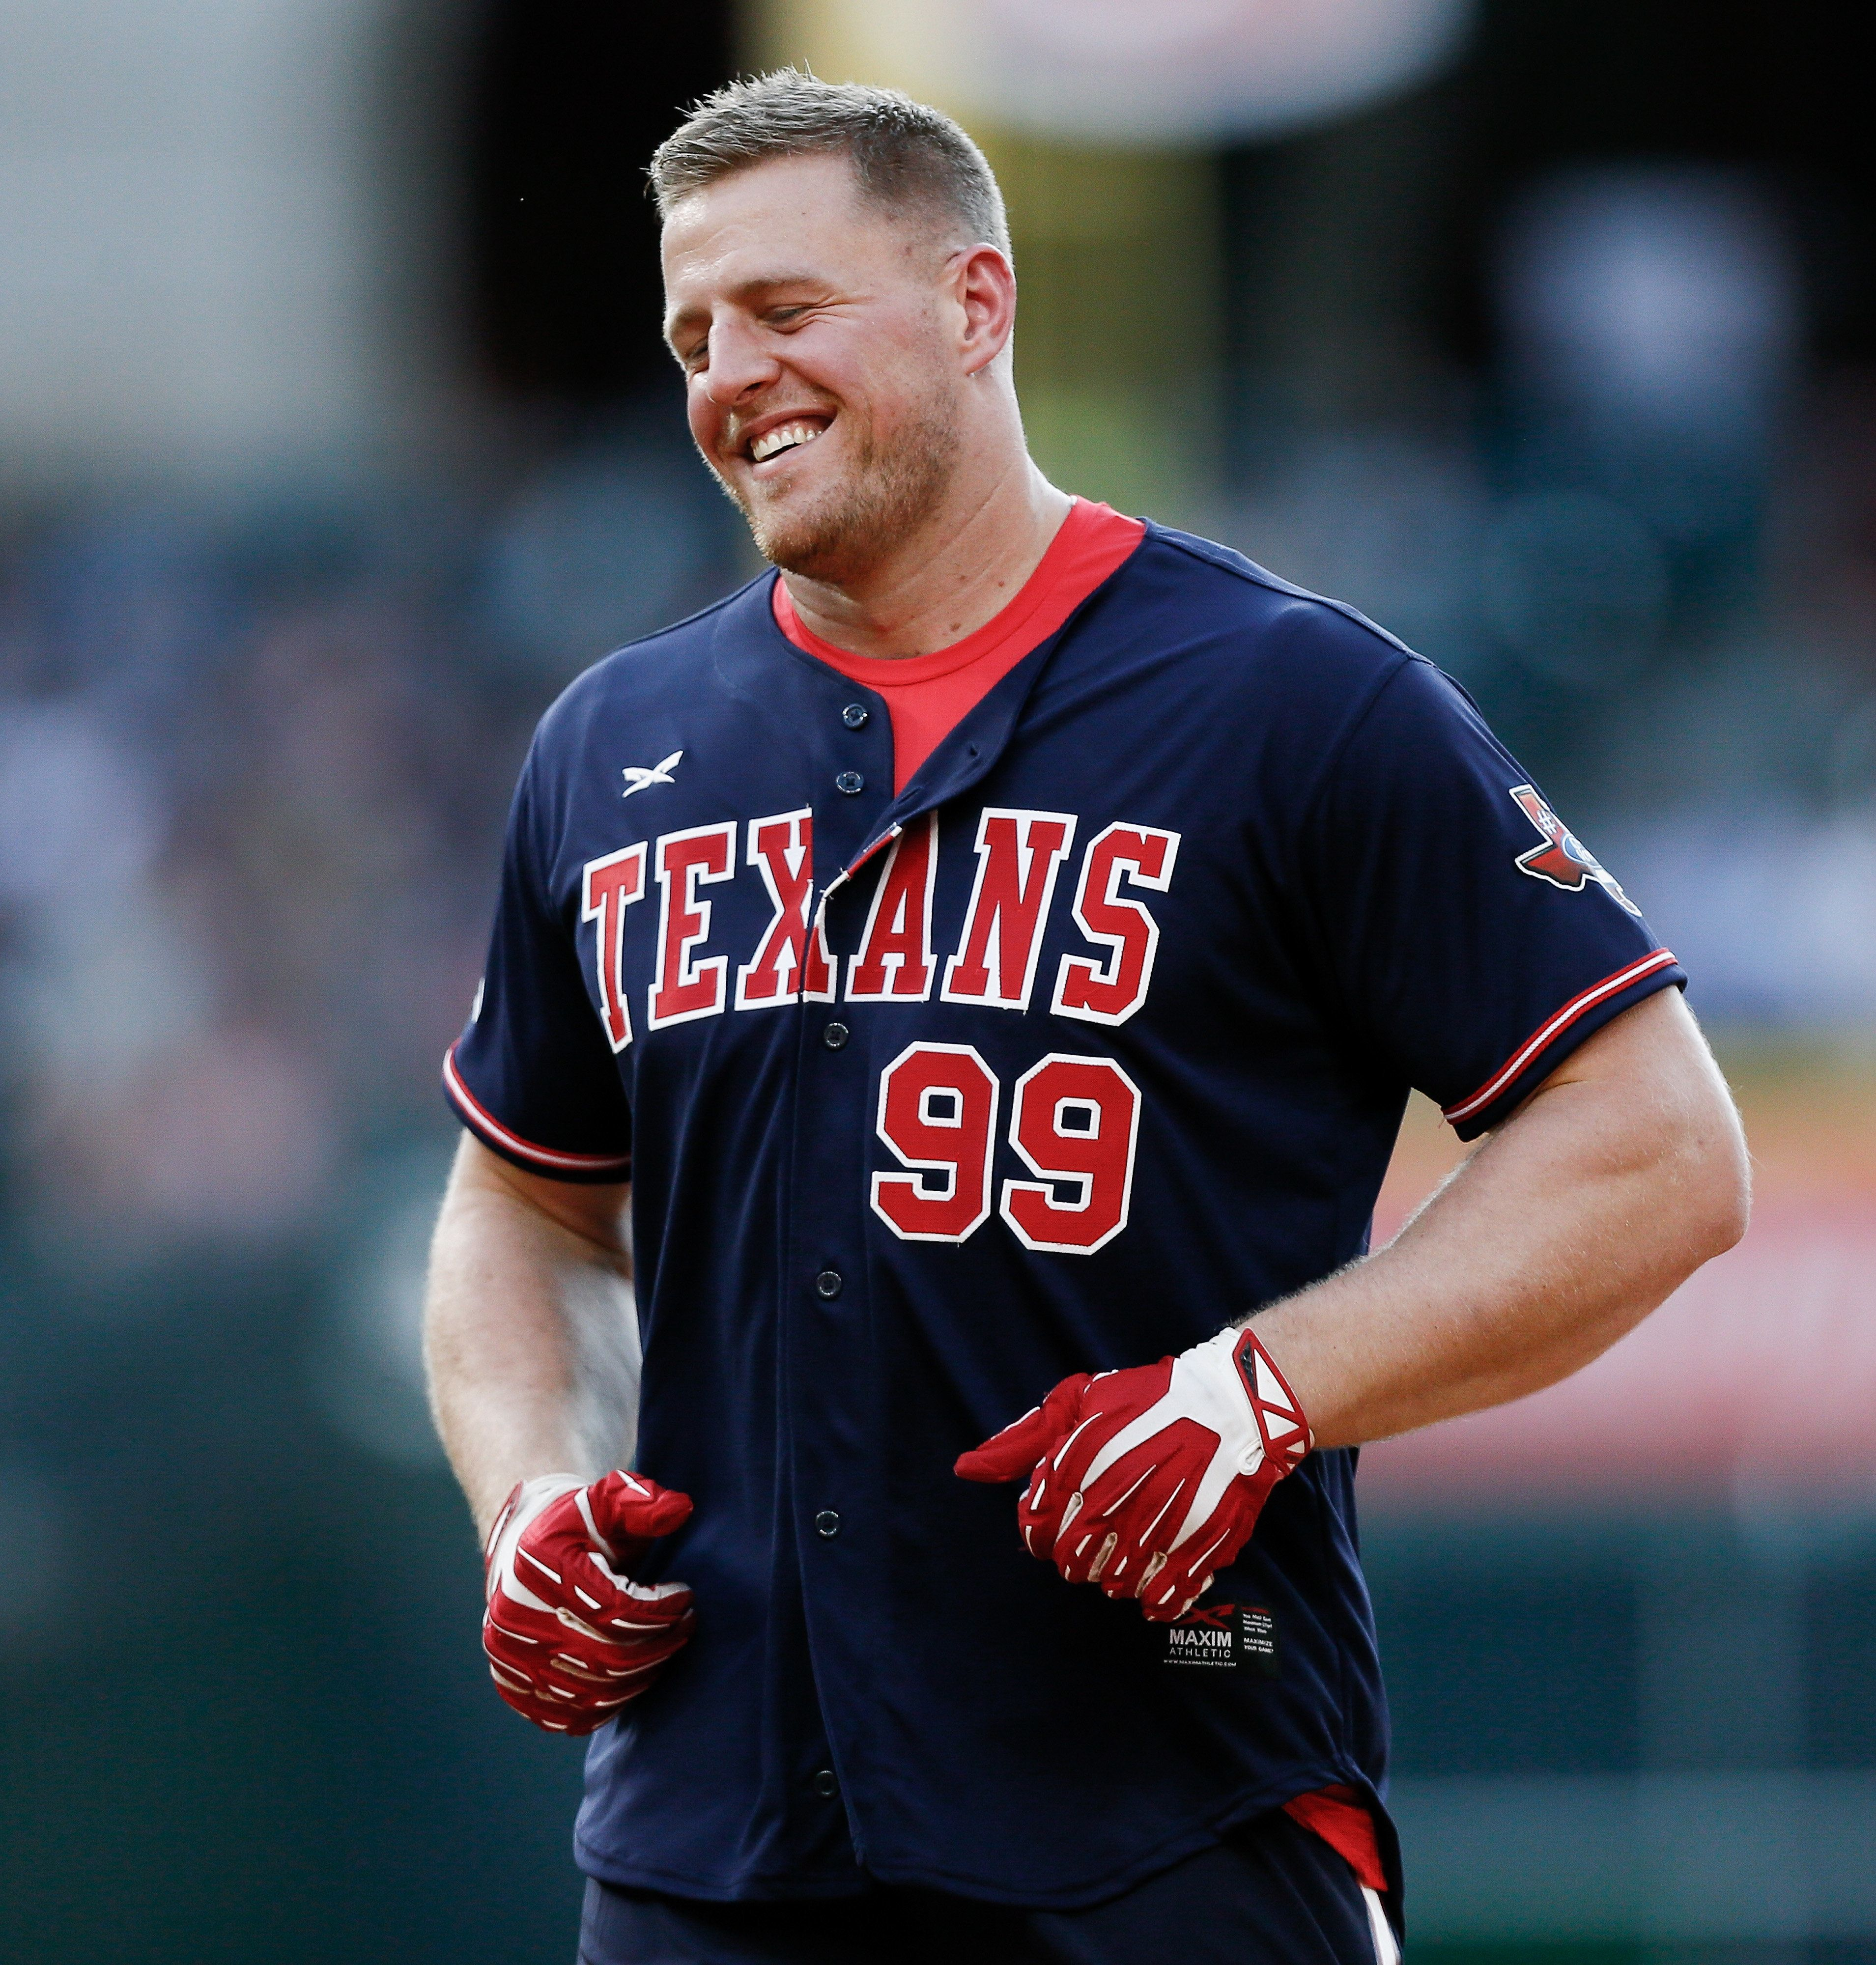 jj watt haircut texans teammates argue about existence of dinosaurs 1792